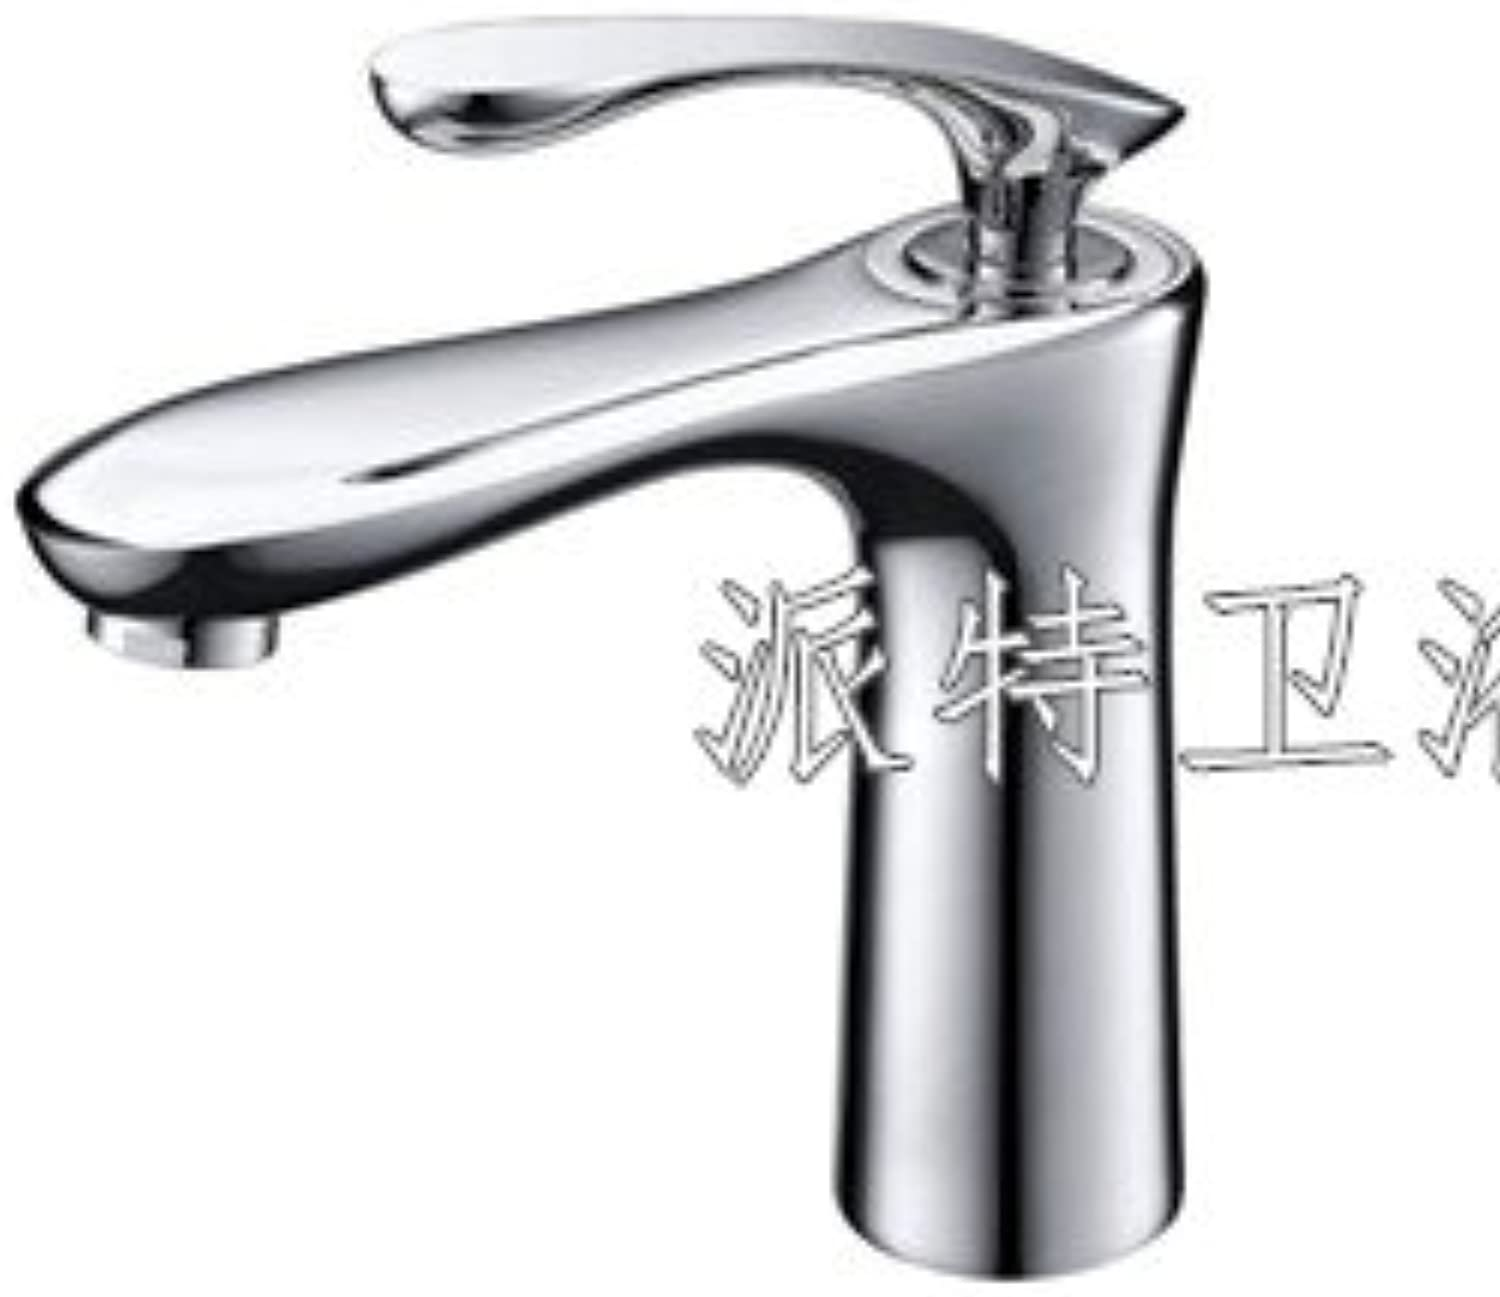 NewBorn Faucet Kitchen Or Bathroom Sink Mixer Tap The Space Aluminum Cold Water Sink Water Tap Water Tap Dish Washing Basin Cold Water Tap Tap Tap redation C +